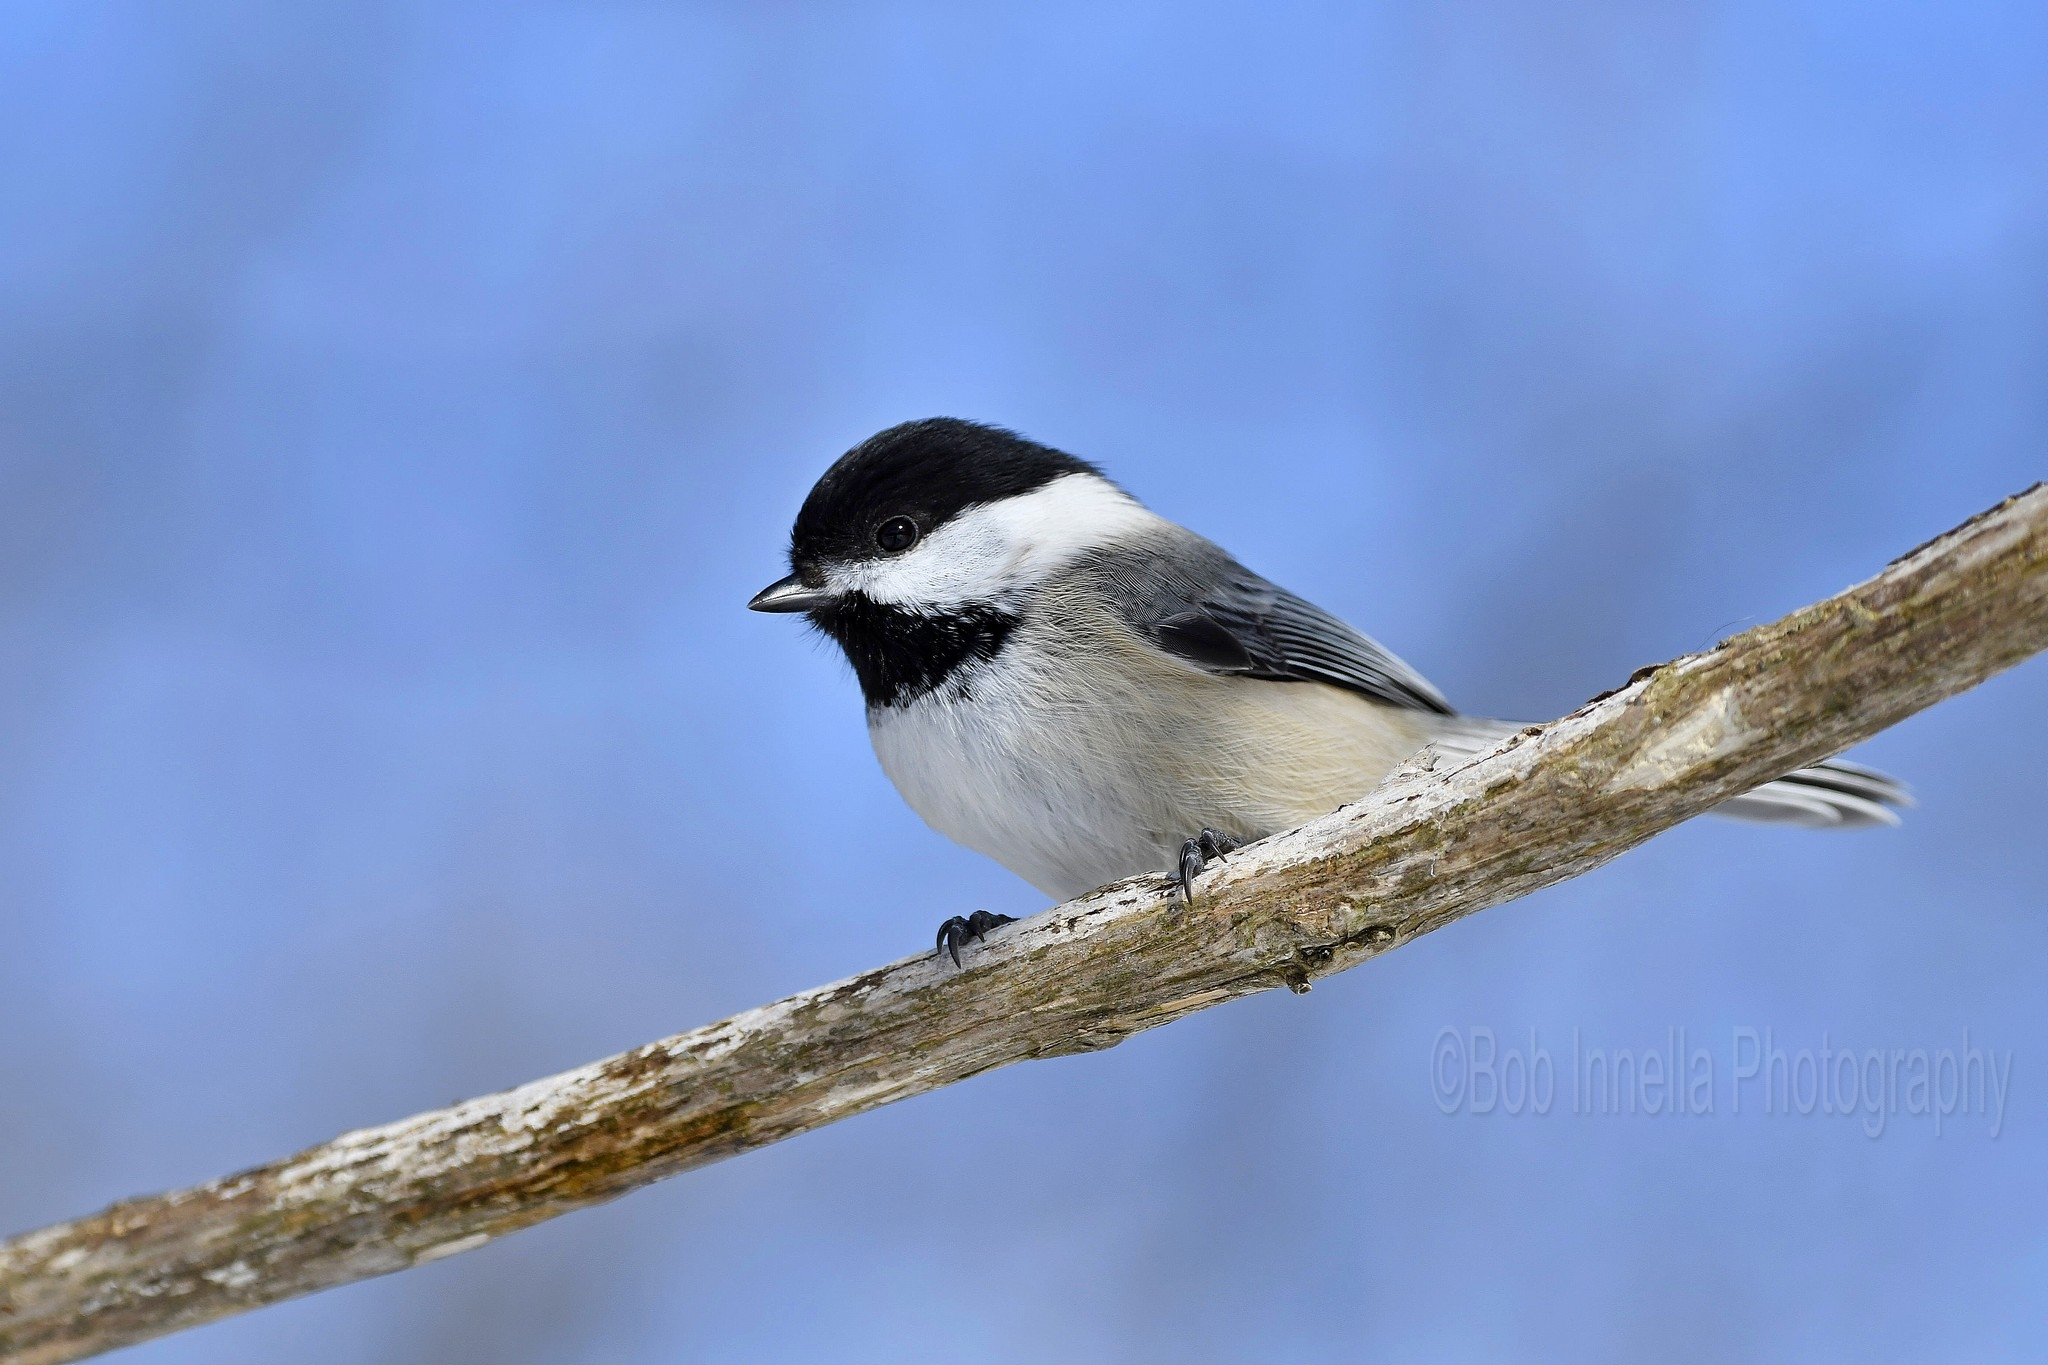 Black Capped Chickadee2 - Taken in the Wilds of Northeast Pa by Buckmaster